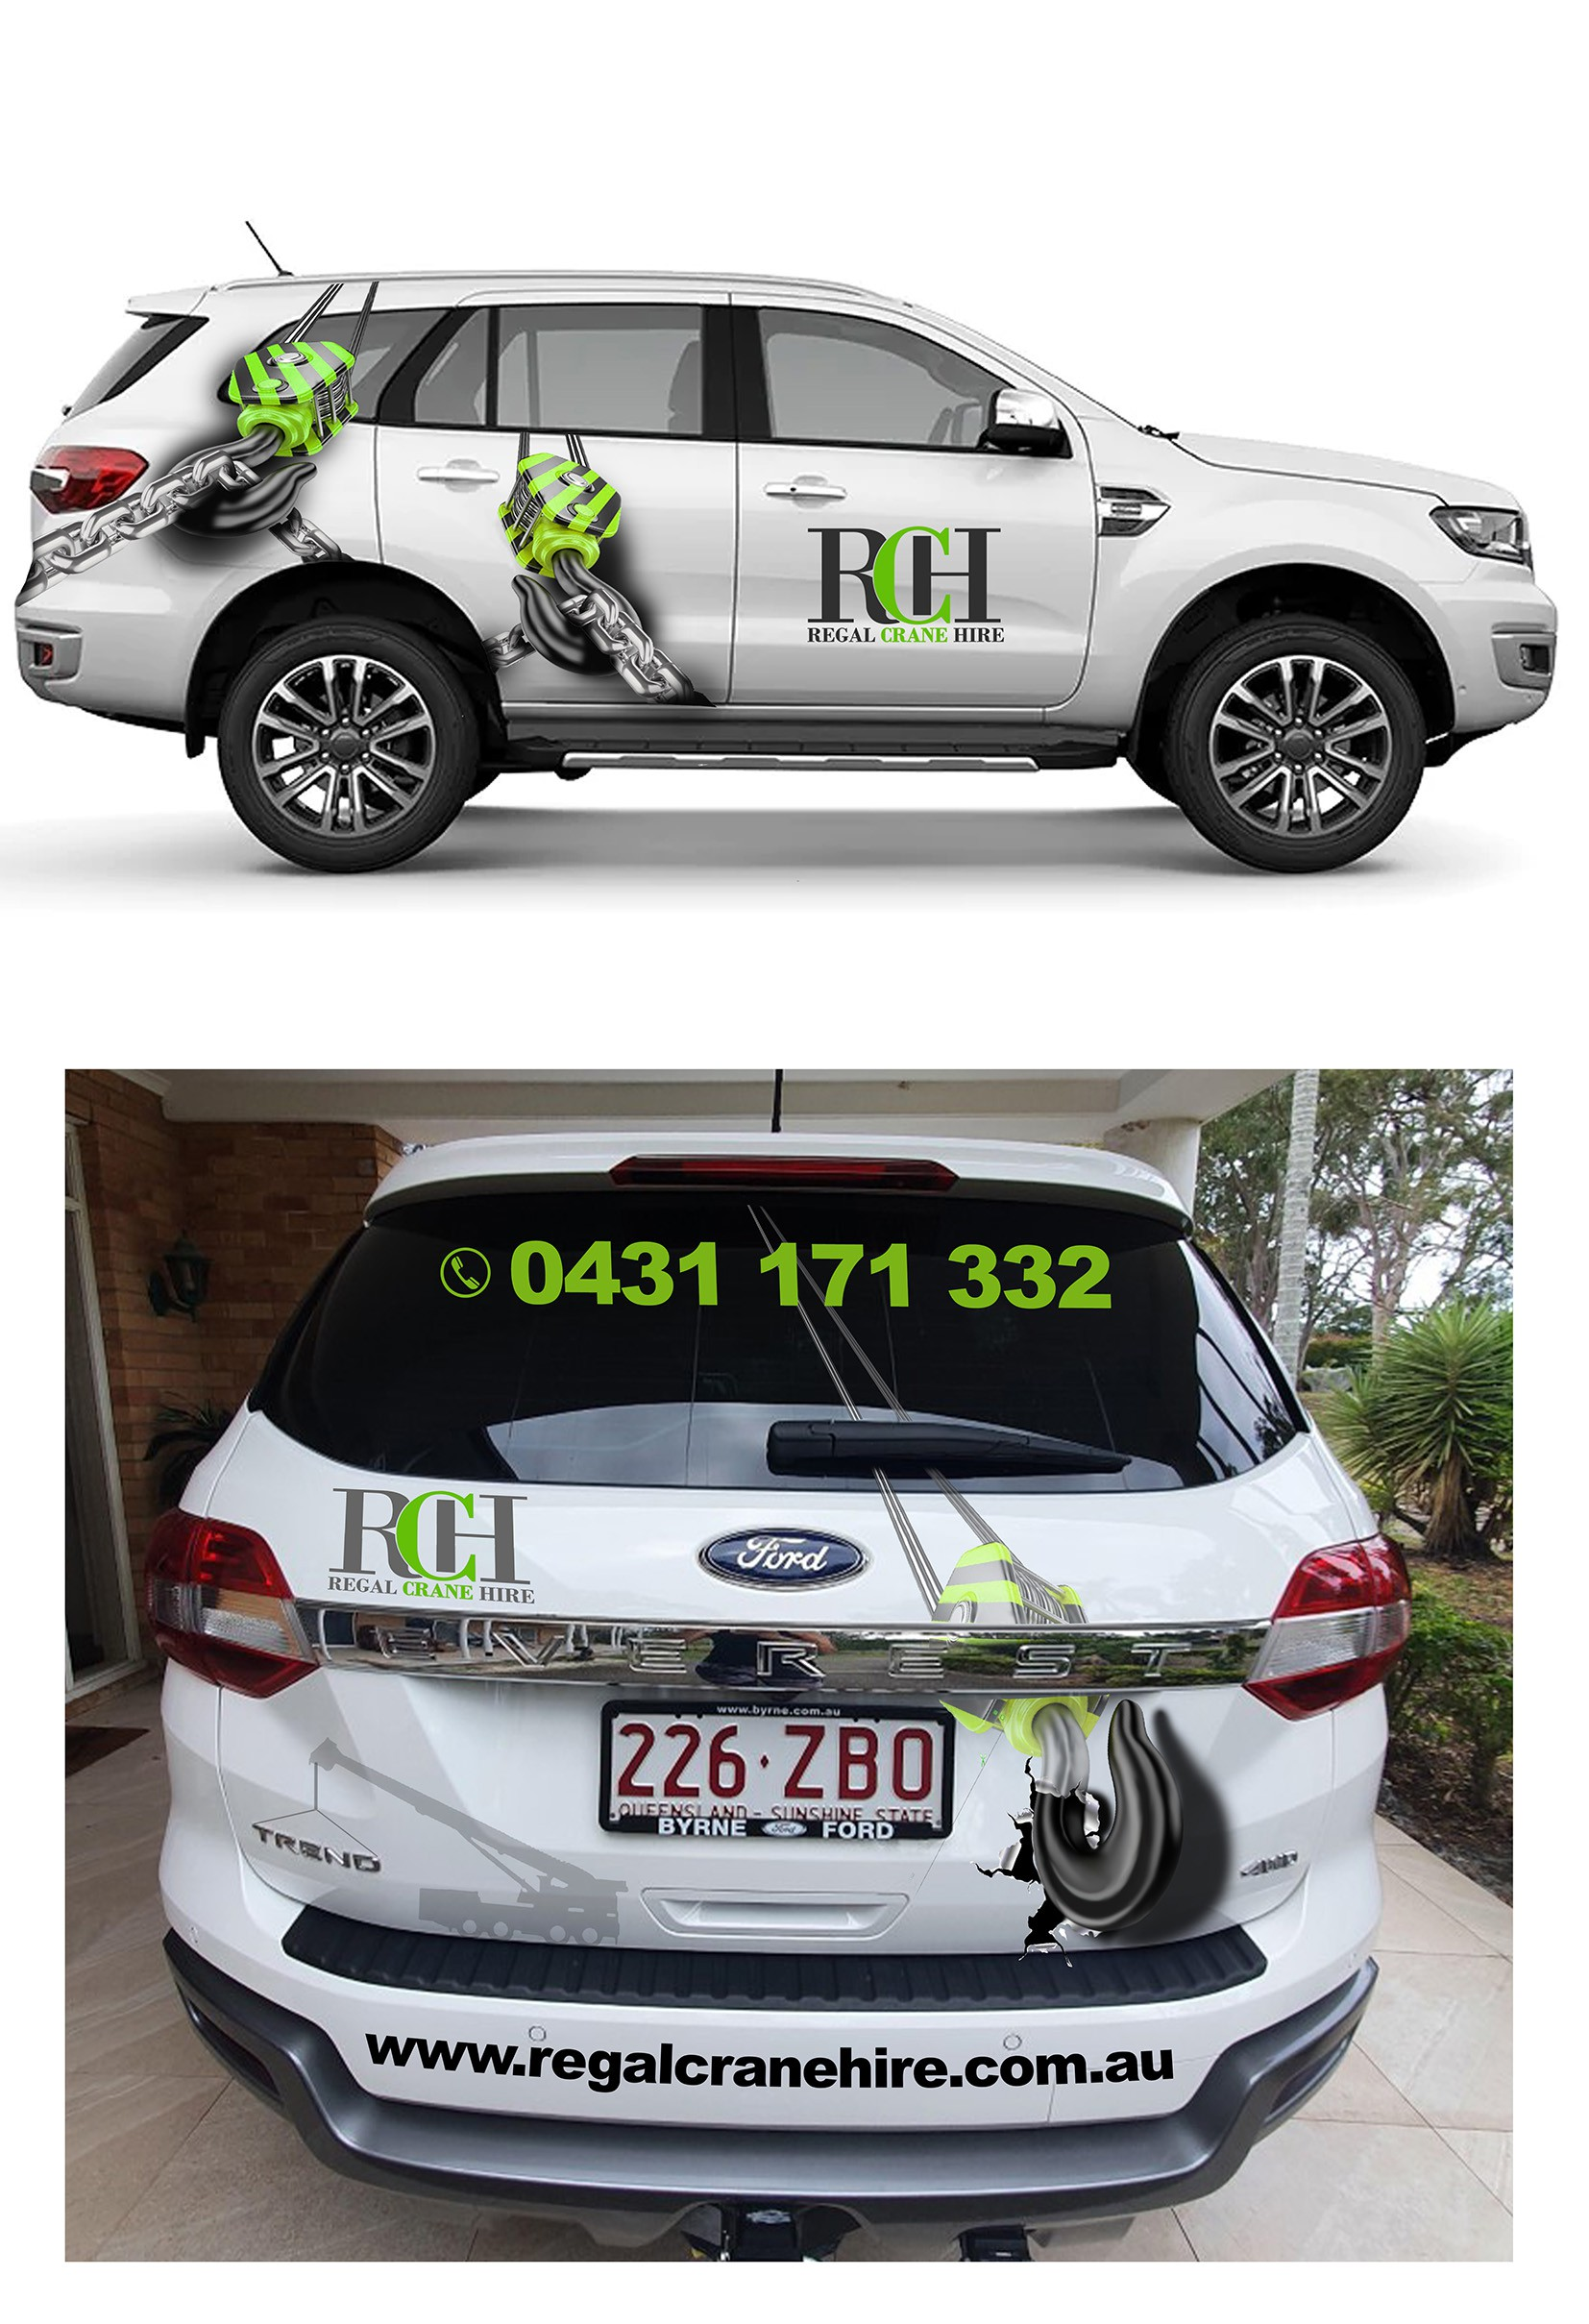 Half car wrap for the boss's wife's car of a crane company